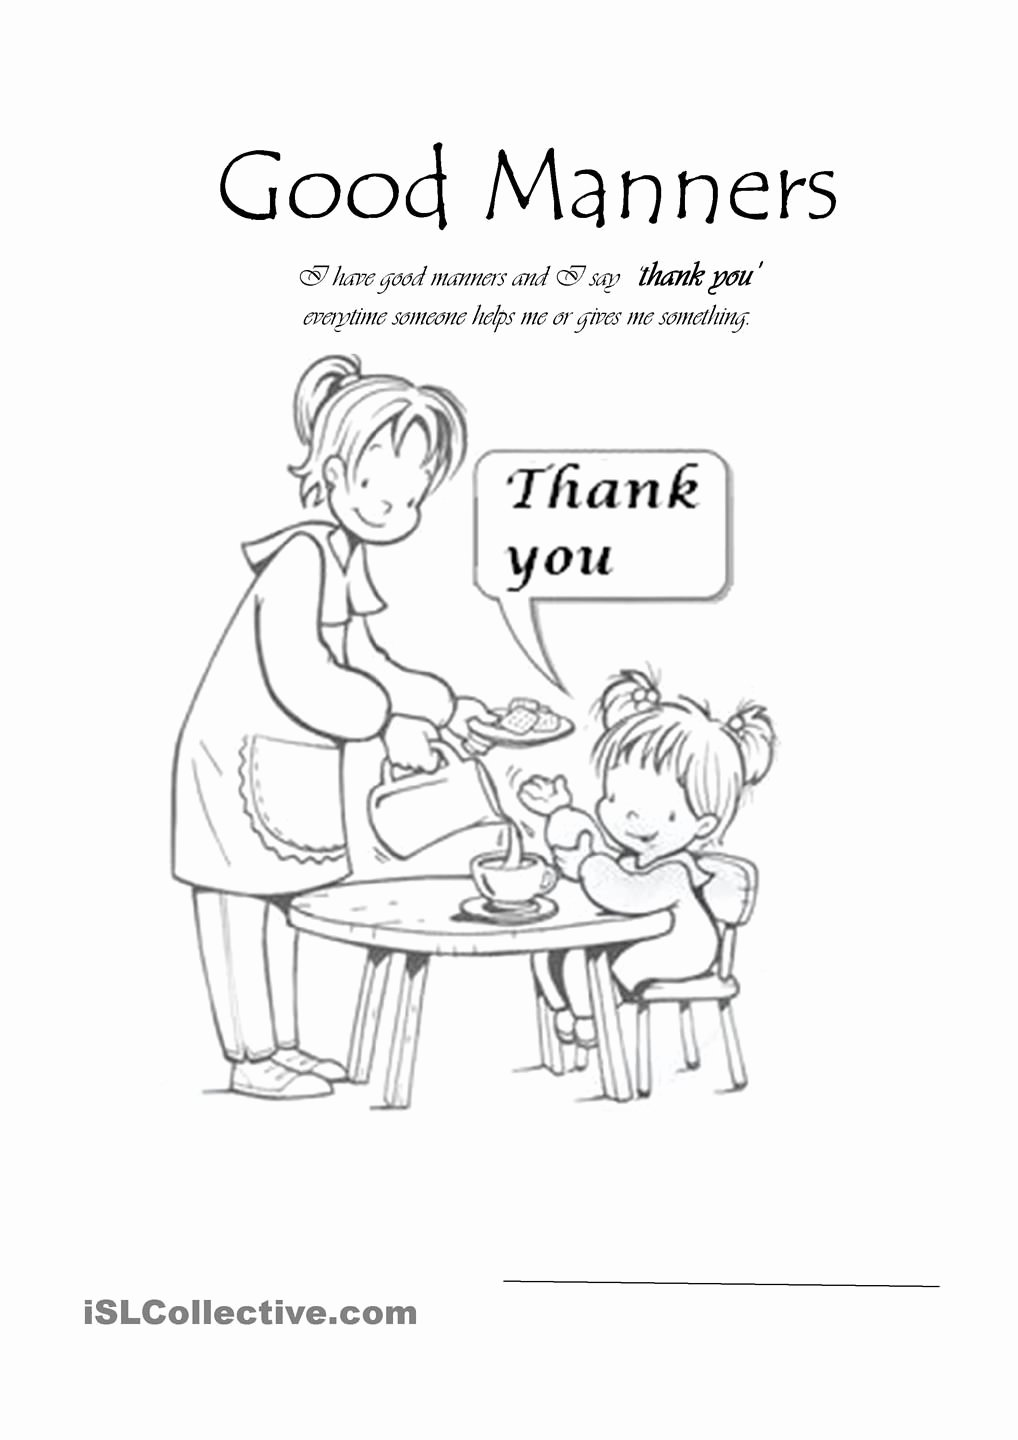 Good Manners Worksheets for Preschoolers Printable Good Manners